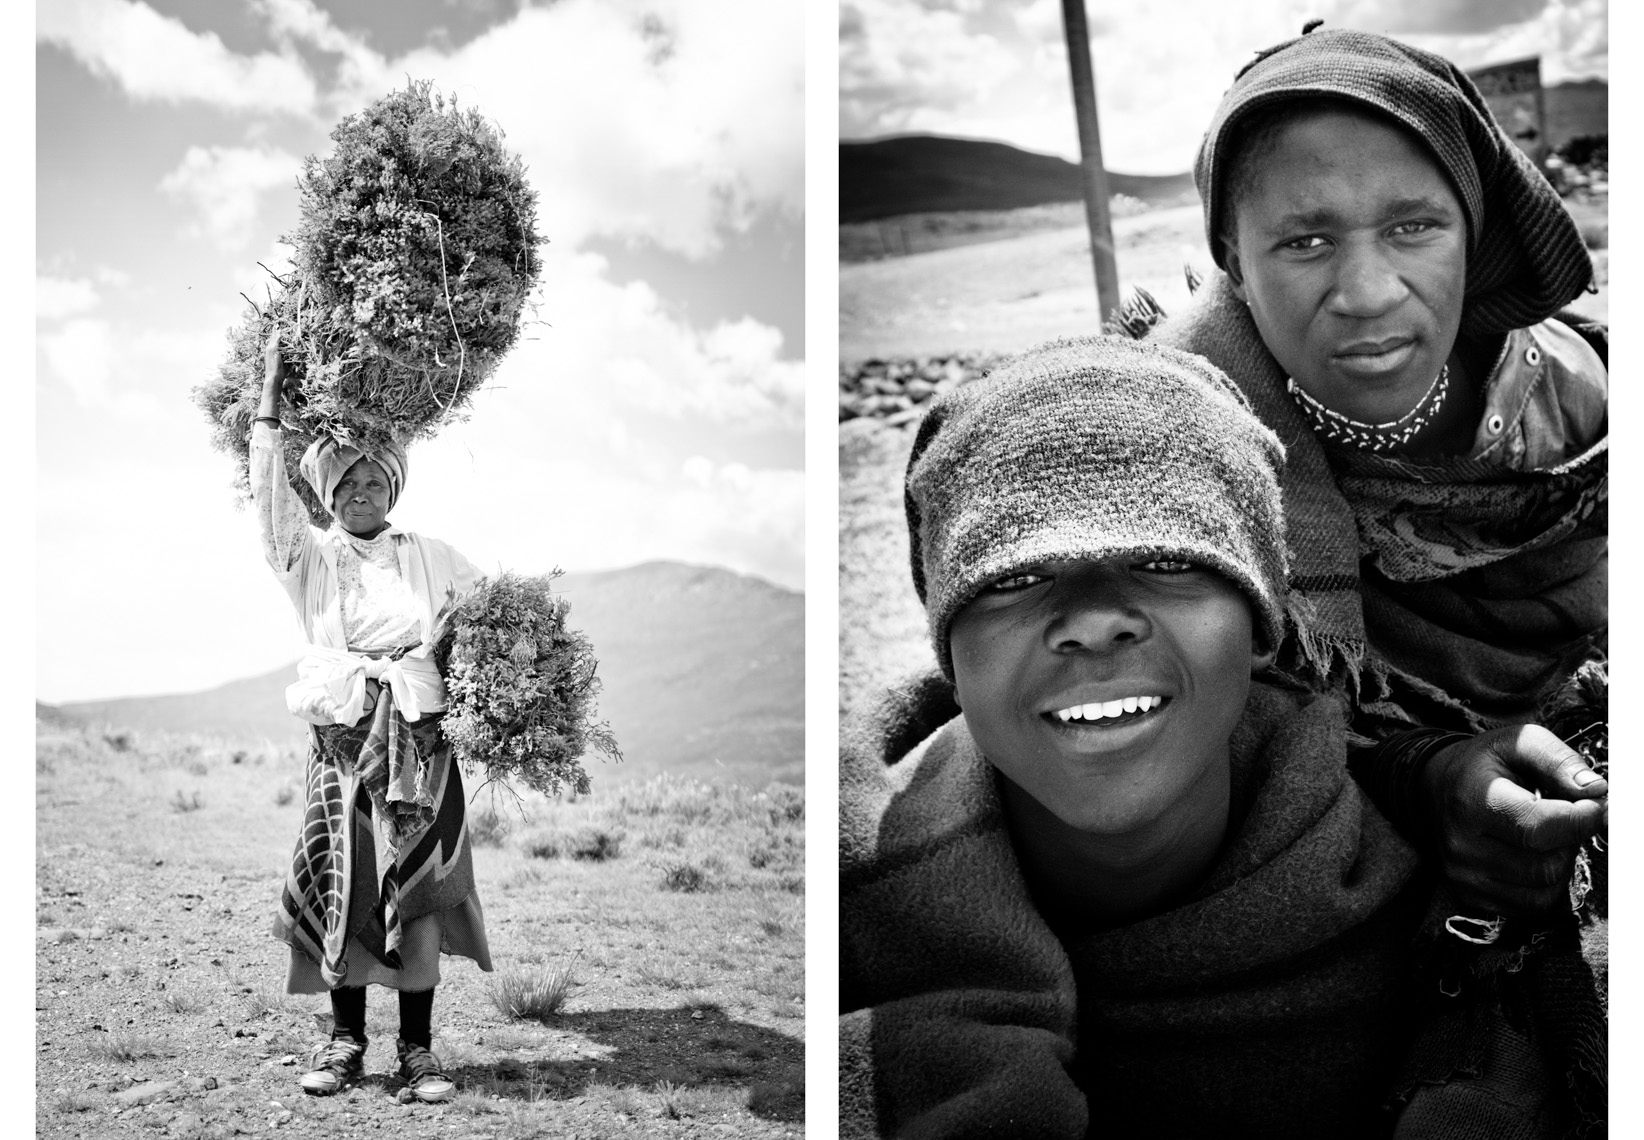 Travel photography by Forest Woodward in Lesotho the Kindom surrounded by South Africa